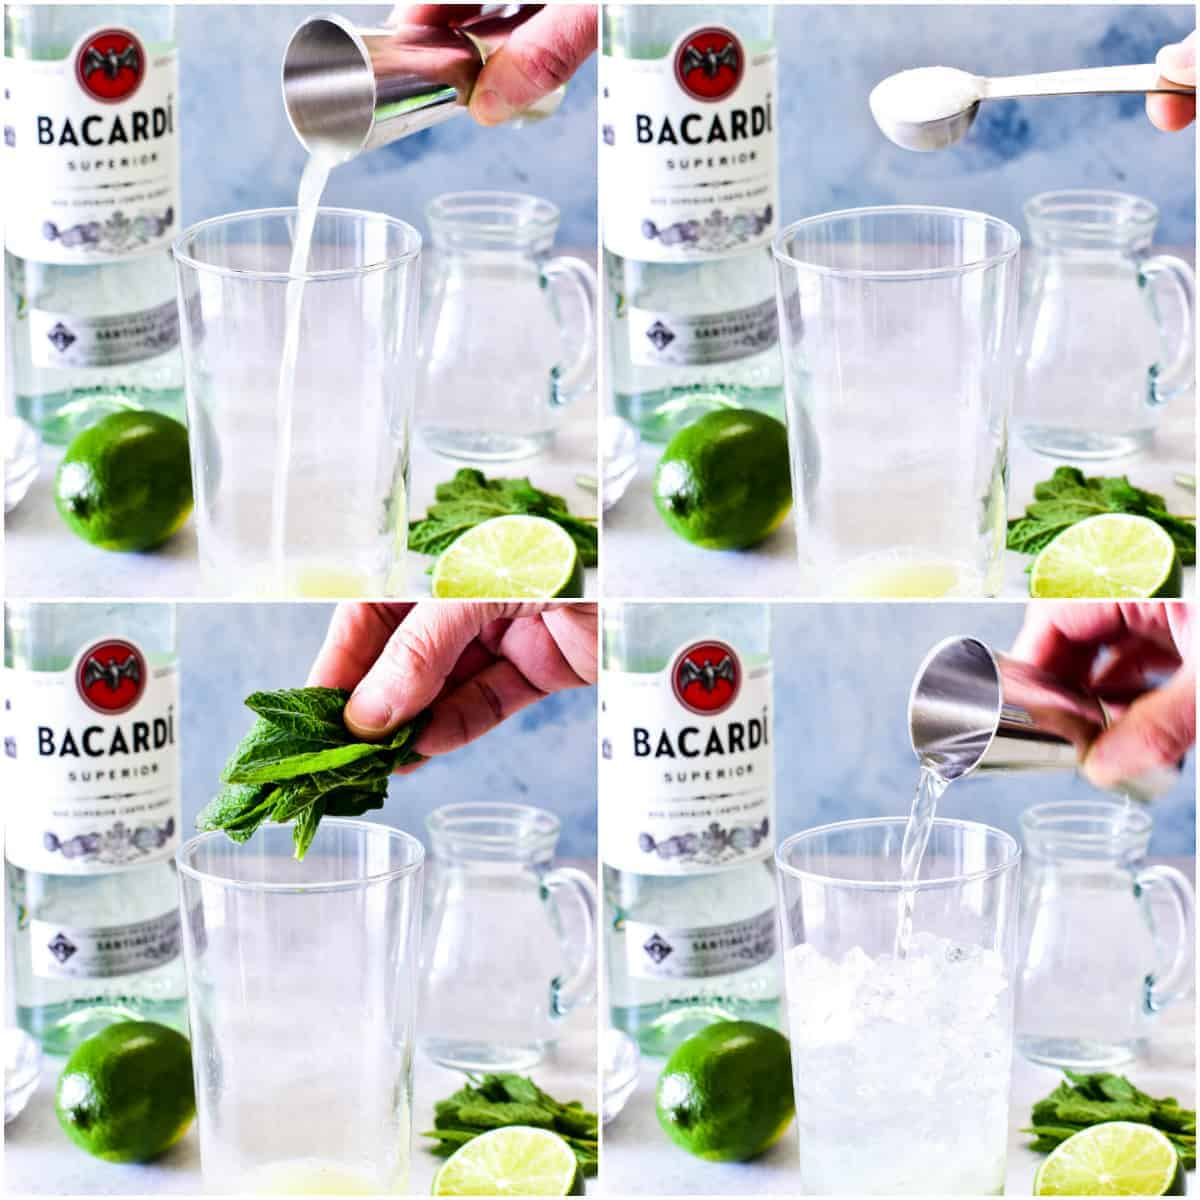 Step by step photos of Mojito making